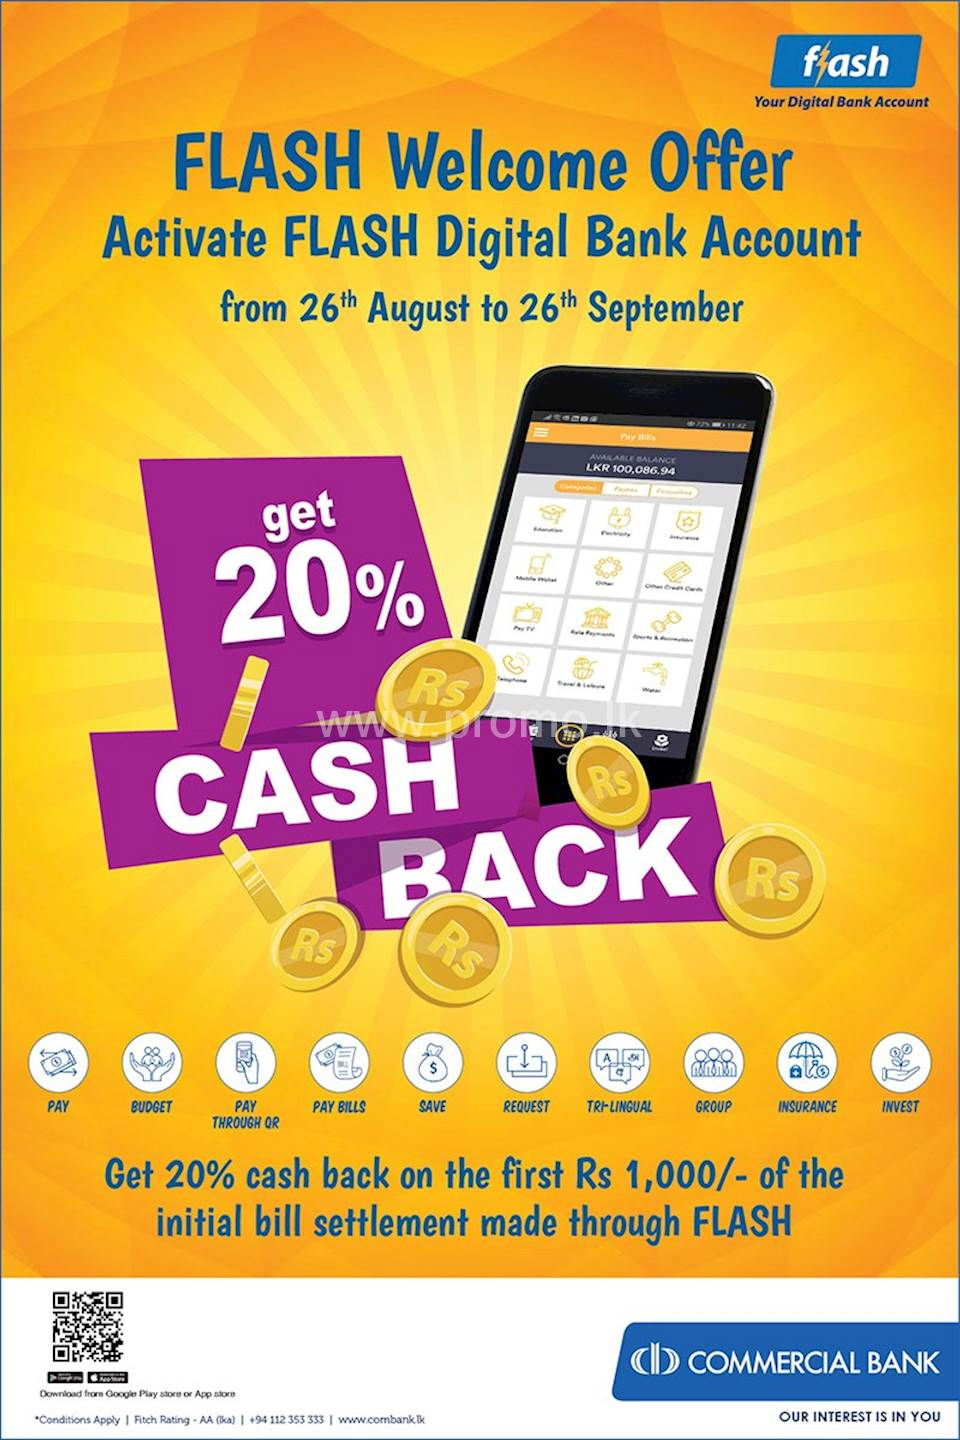 Get 20% Cash Back When Activate Commercial Bank Flash Digital Bank Account